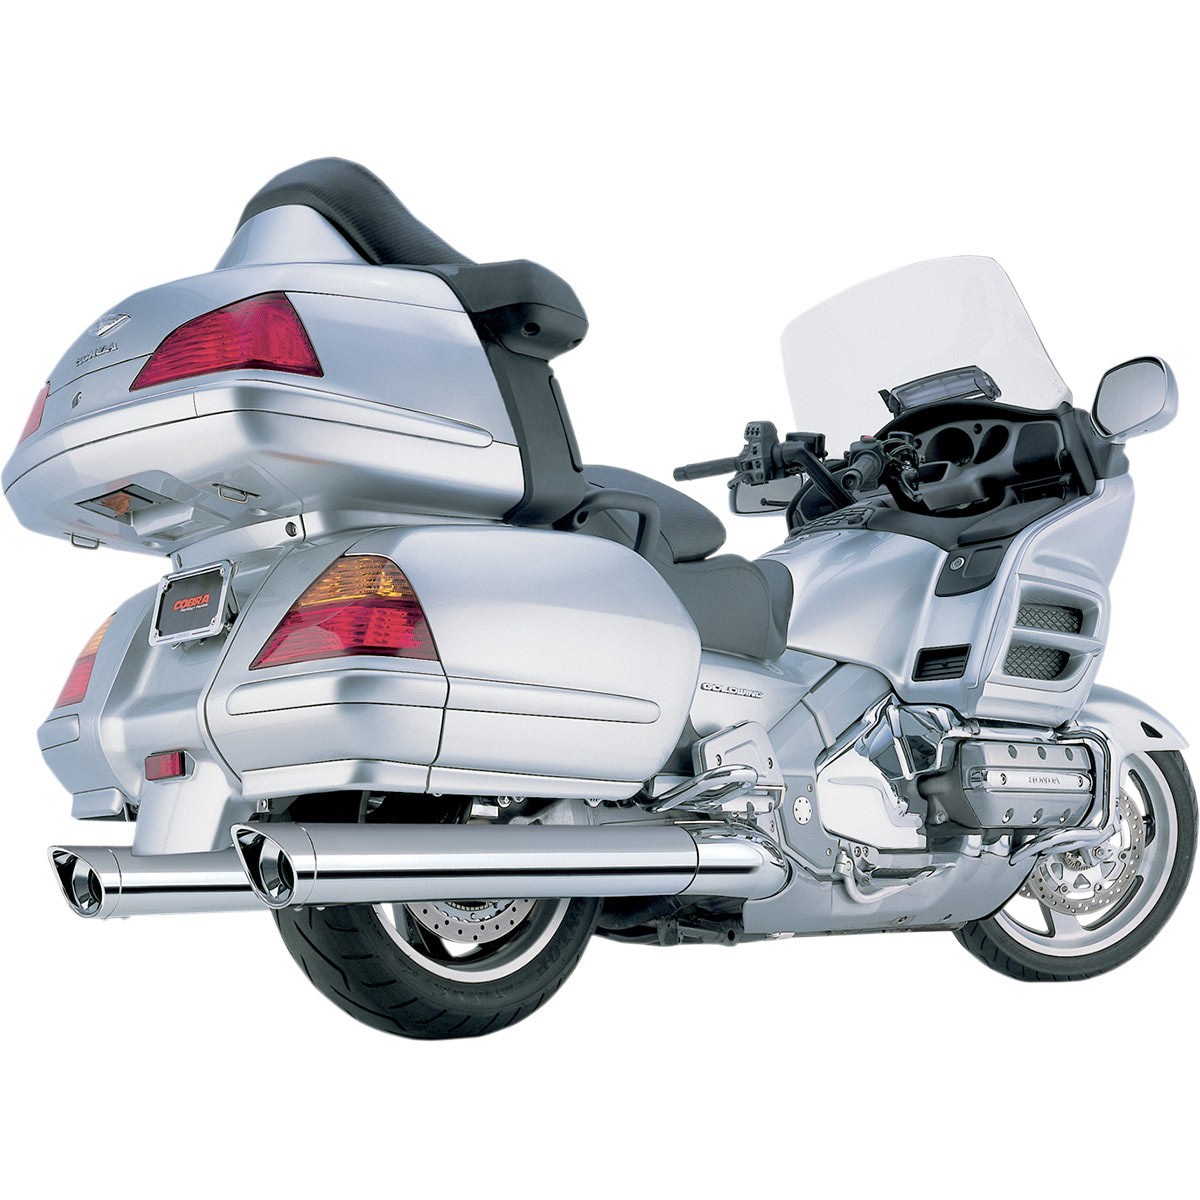 Cobra Classic 4 Exhaust For Gl1800 01 11 2003 Honda Goldwing W Standard Tip Scalloped Chrome